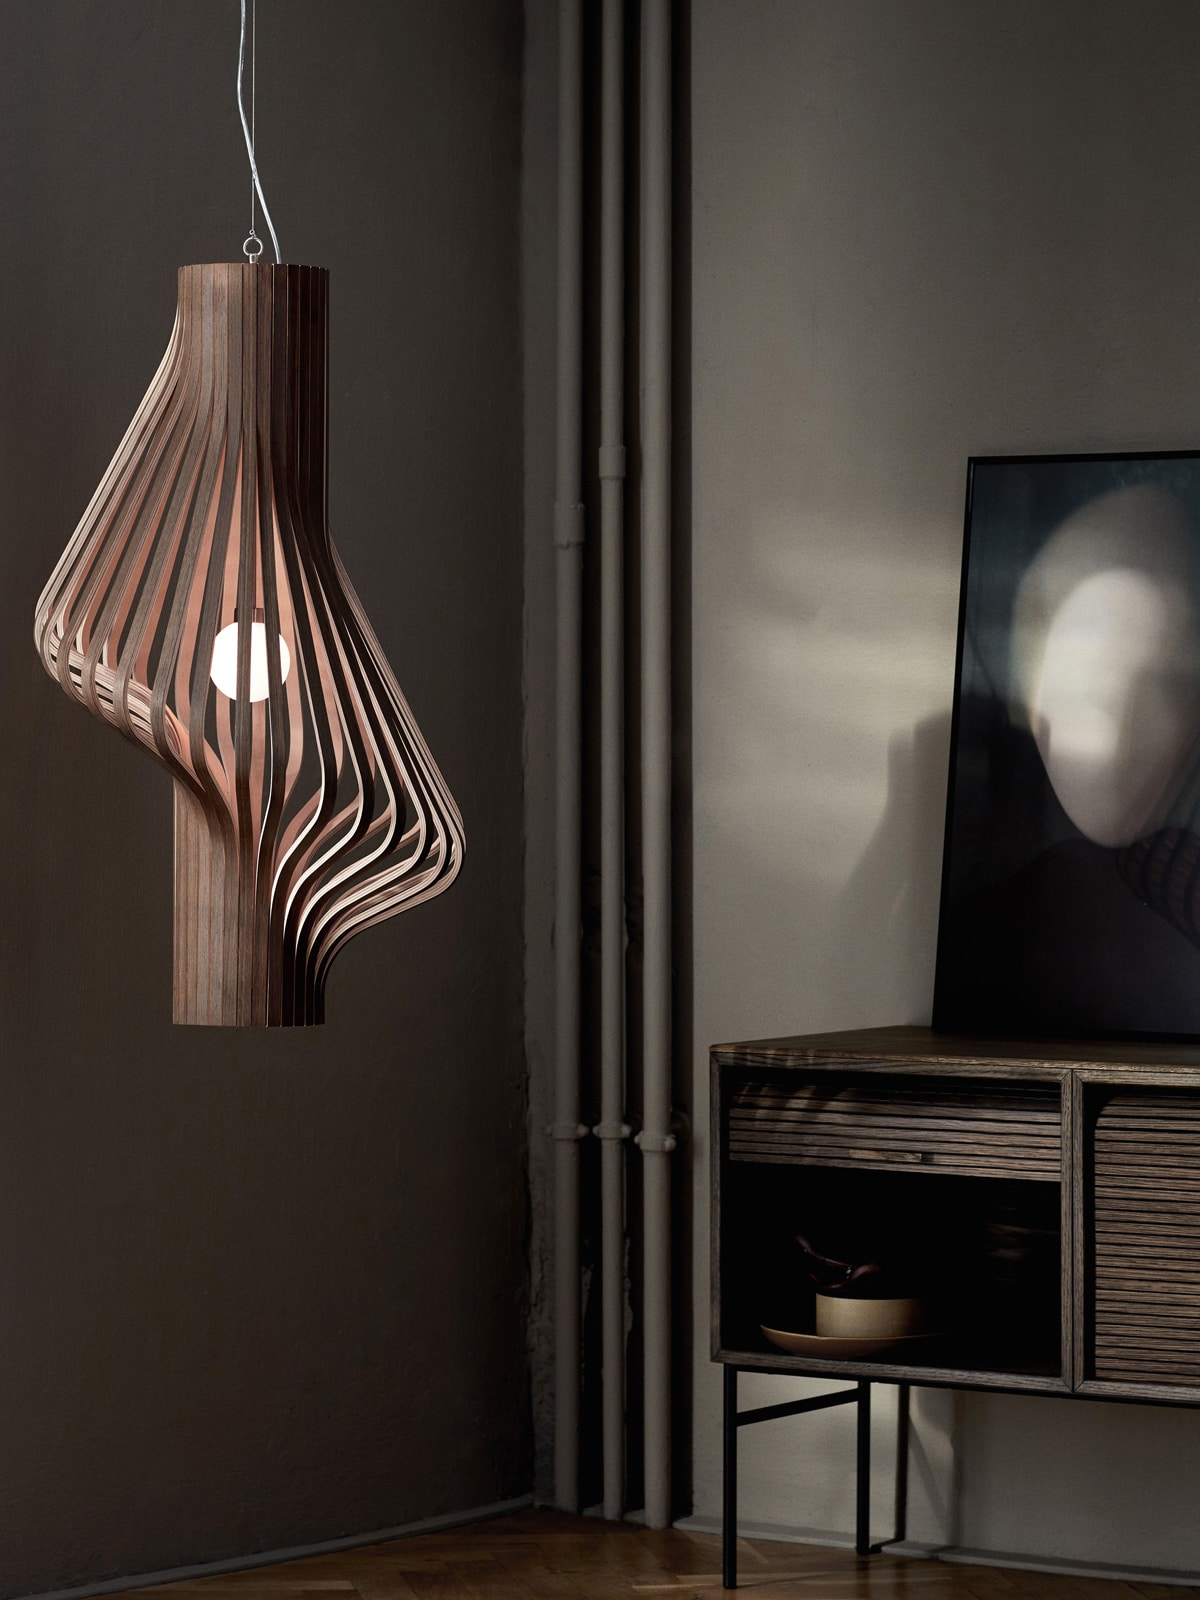 DesignOrt Blog: Holzlampen Diva Northern Lighting